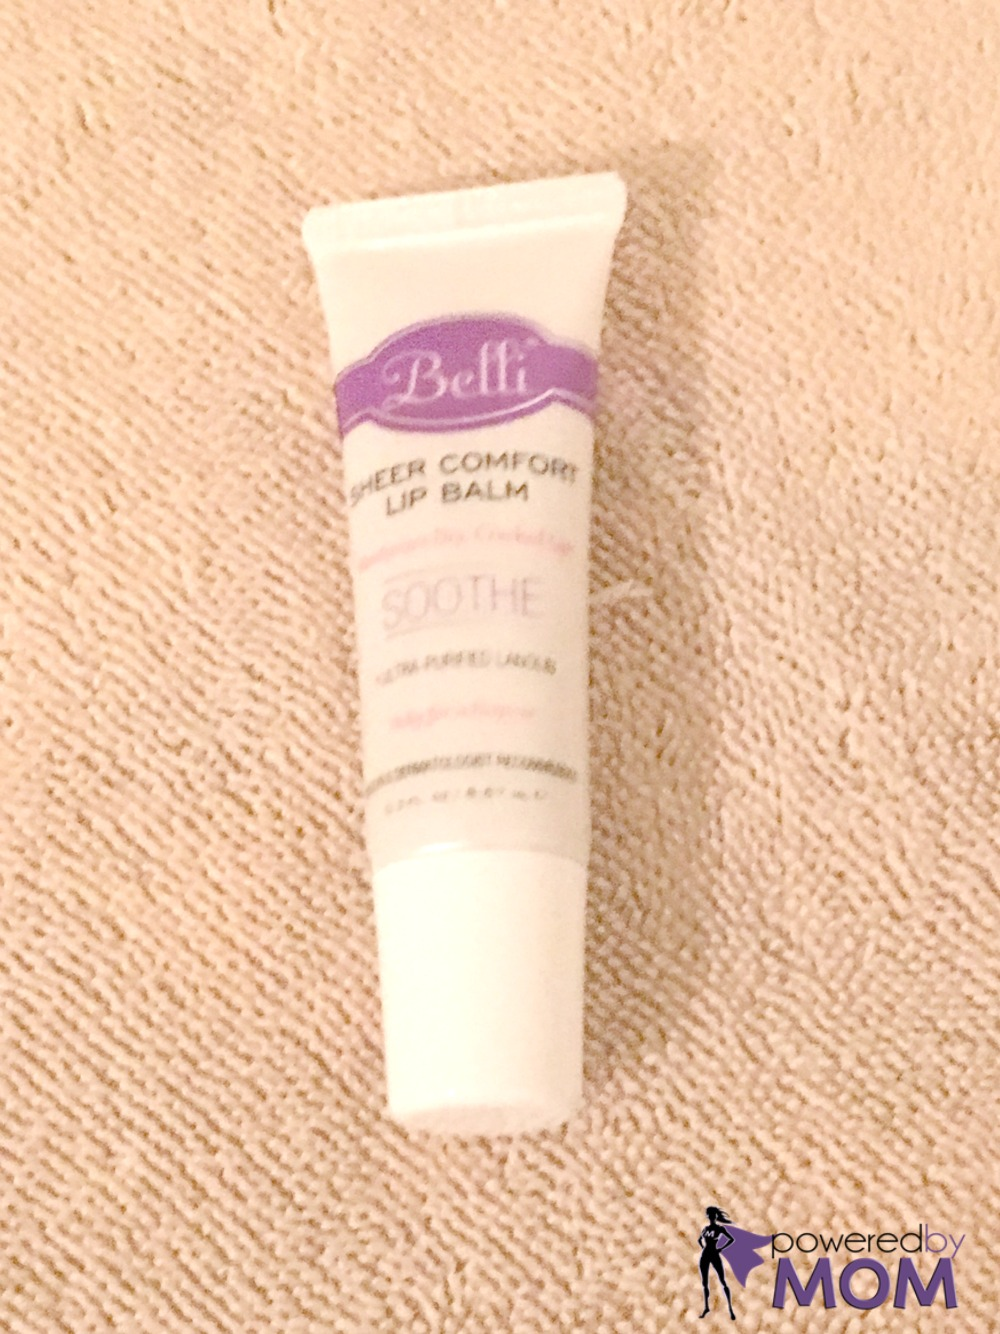 belli-review-1